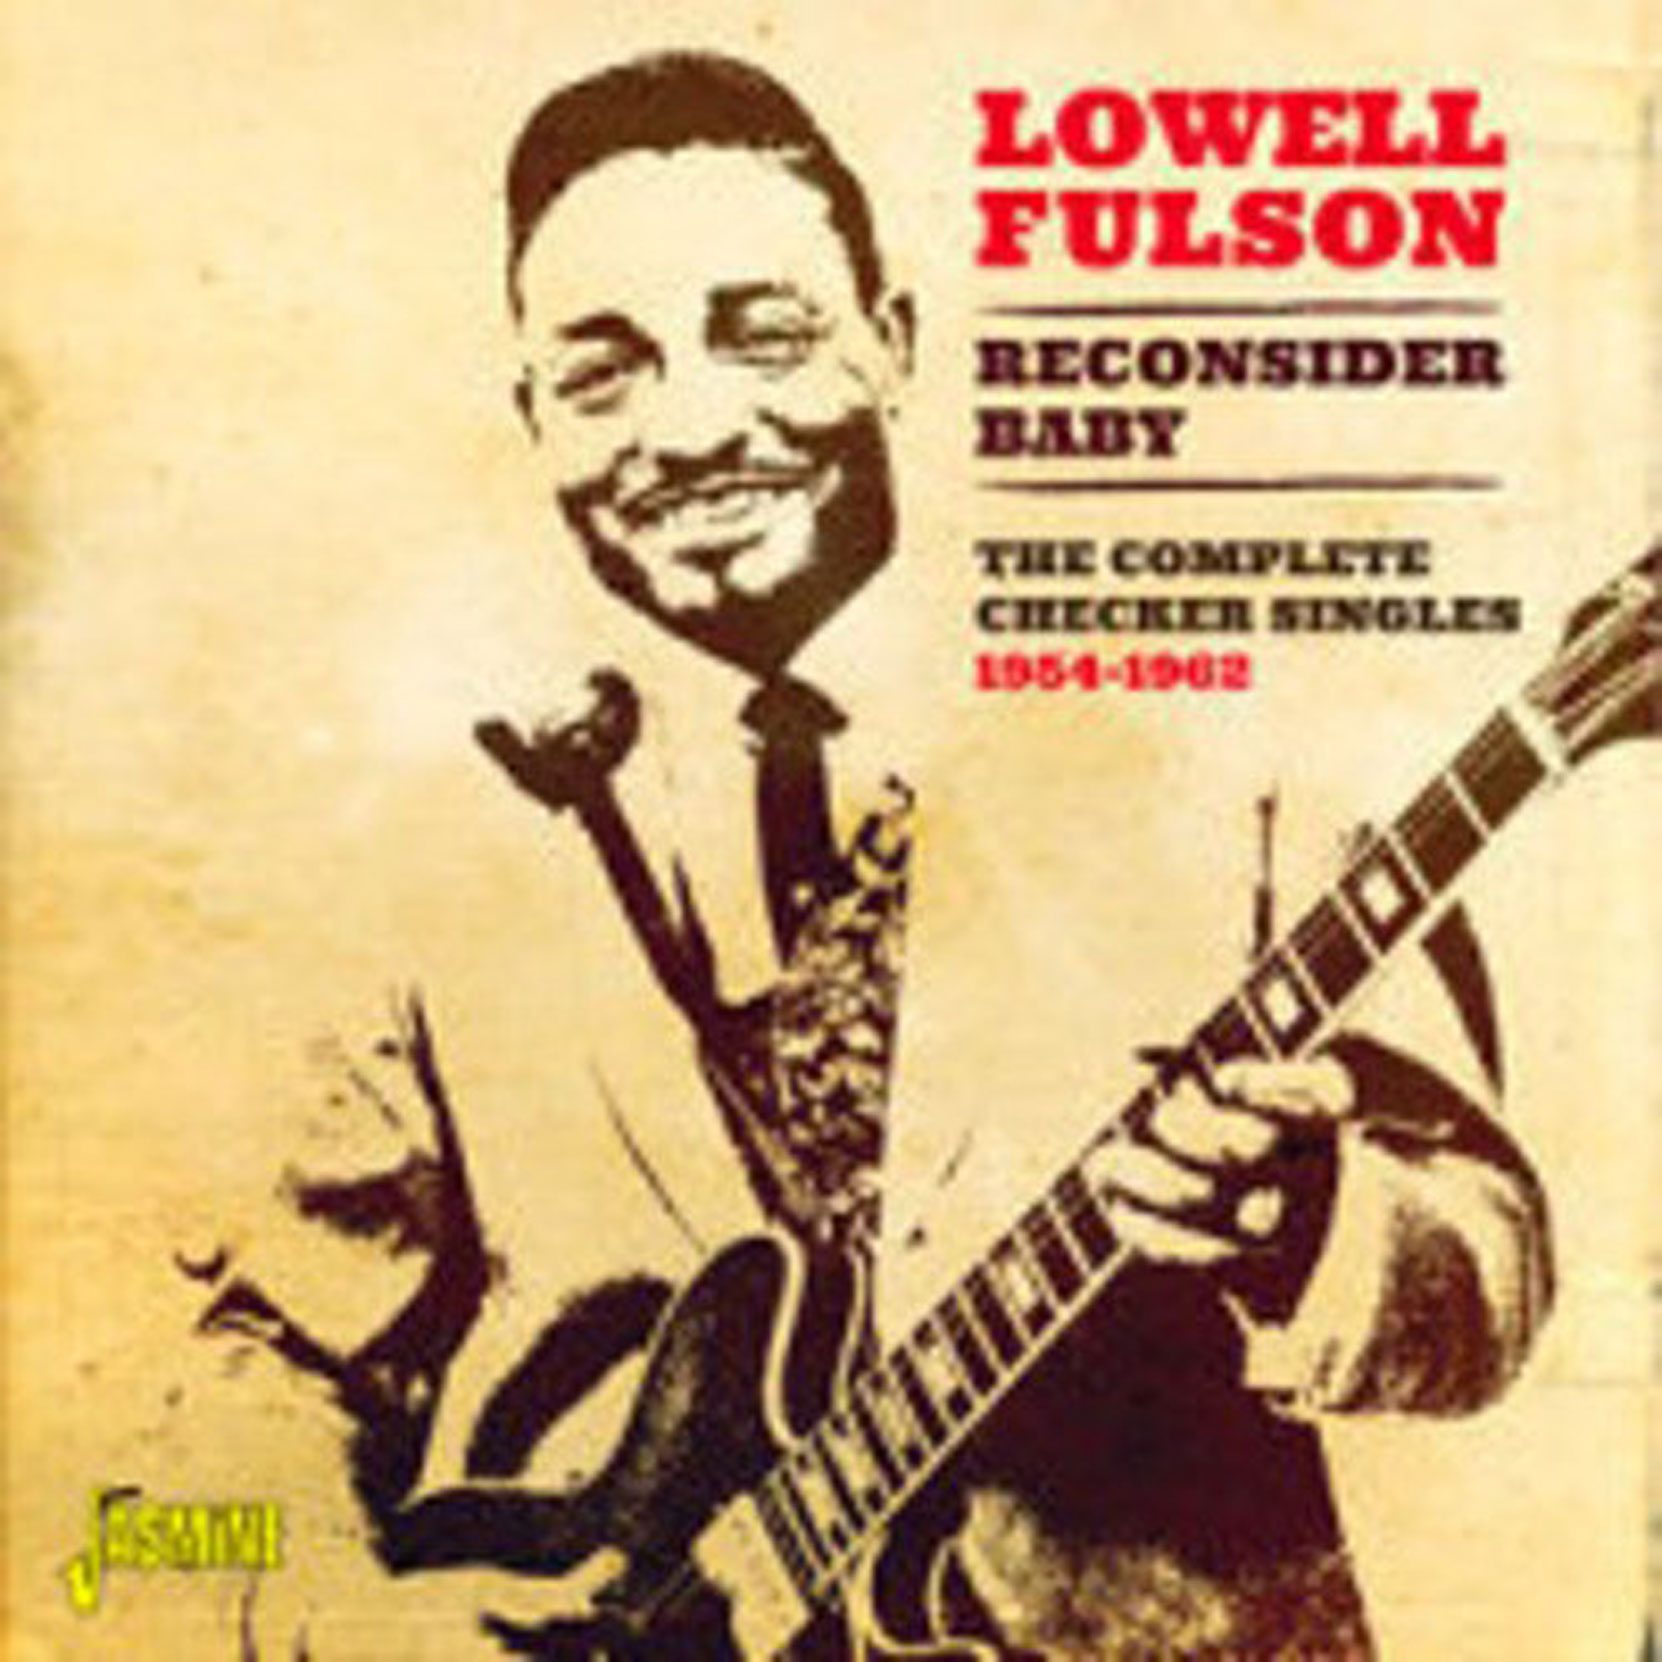 CD cover, Lowell Fulson, Reconsider Baby - The Complete Checker Singles 1954-1962, released on Jasmine Records